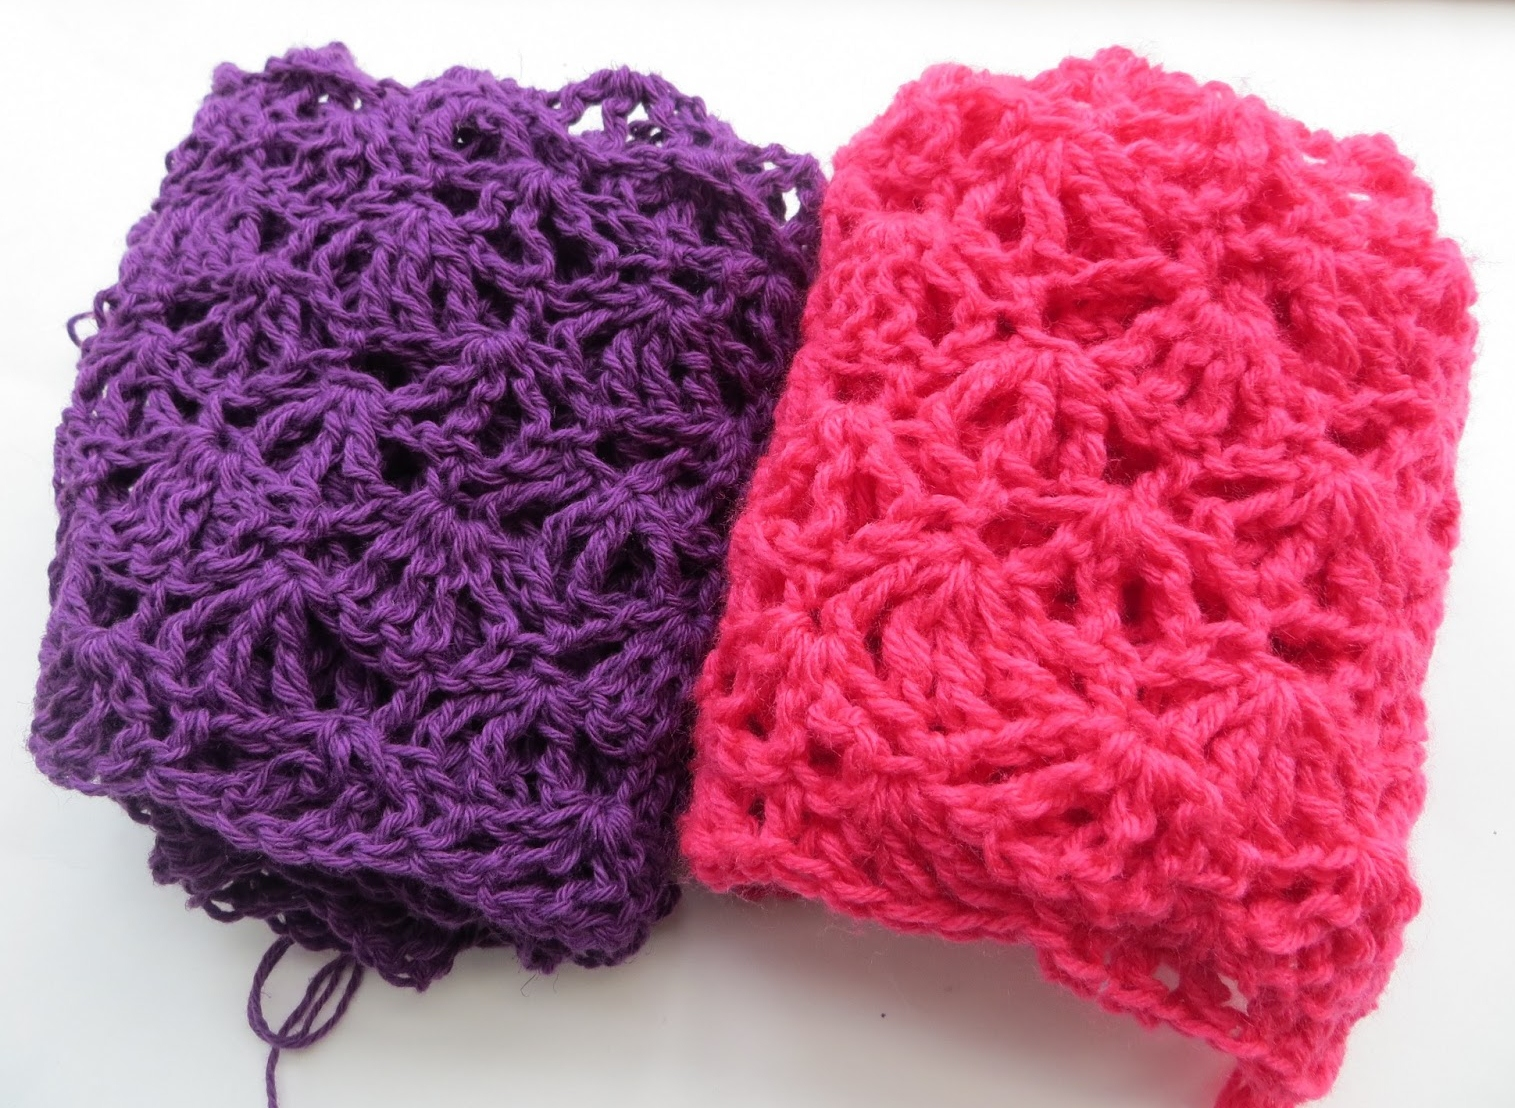 For the Love of Crochet Along: Alana Lacy Scarf, Free Crochet Pattern